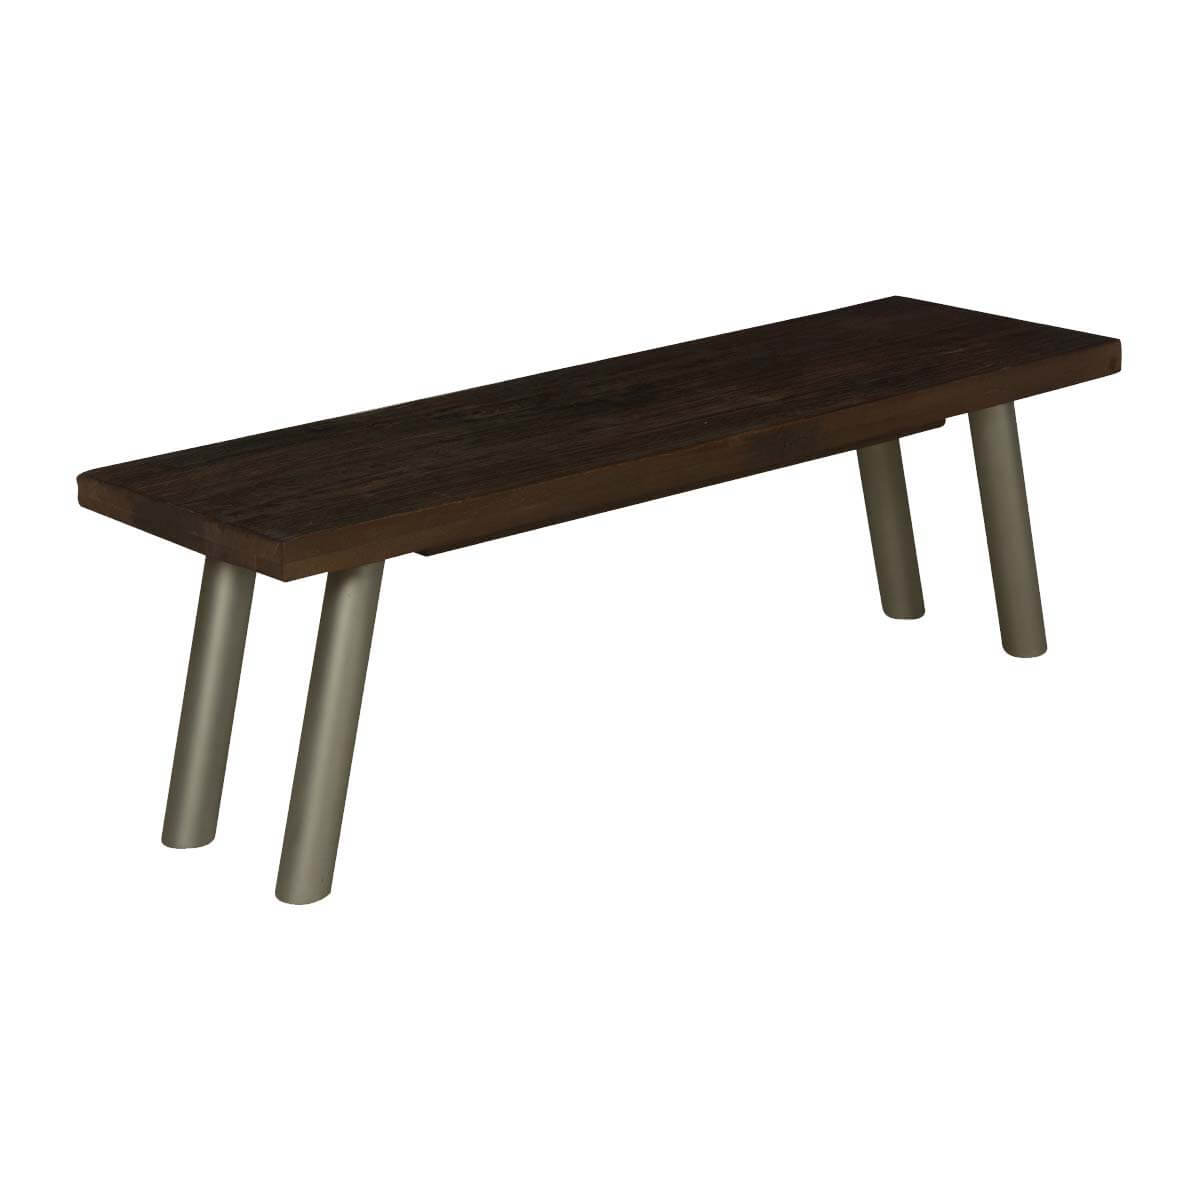 "Modern Frontier Mango Wood & Iron Rustic 55"" Bench"